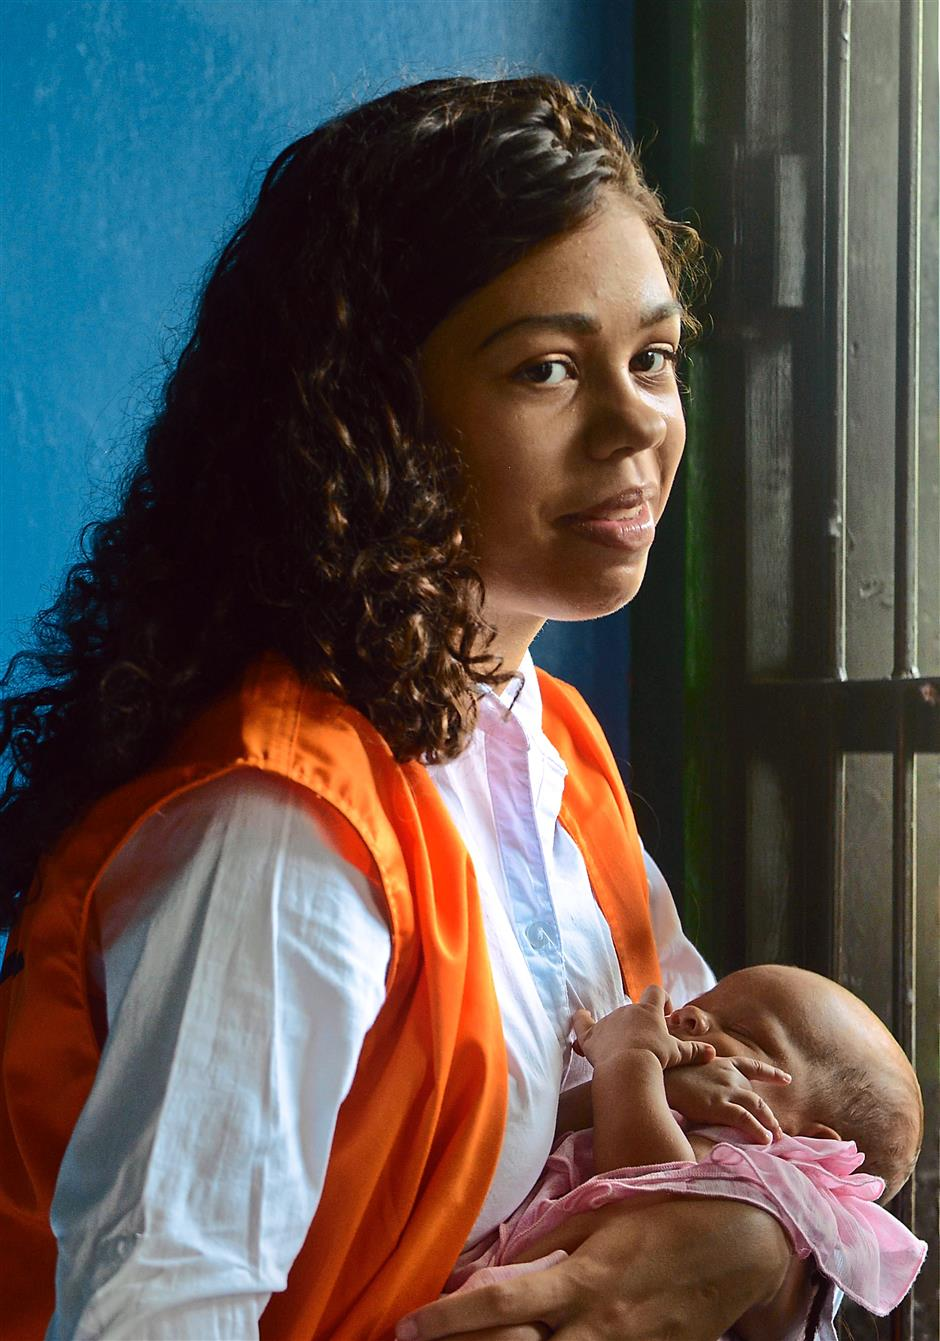 Uncertain future: Mack carrying her young baby inside a holding cell. She was jailed 10 years for assisting in her mother's murder. — AFP